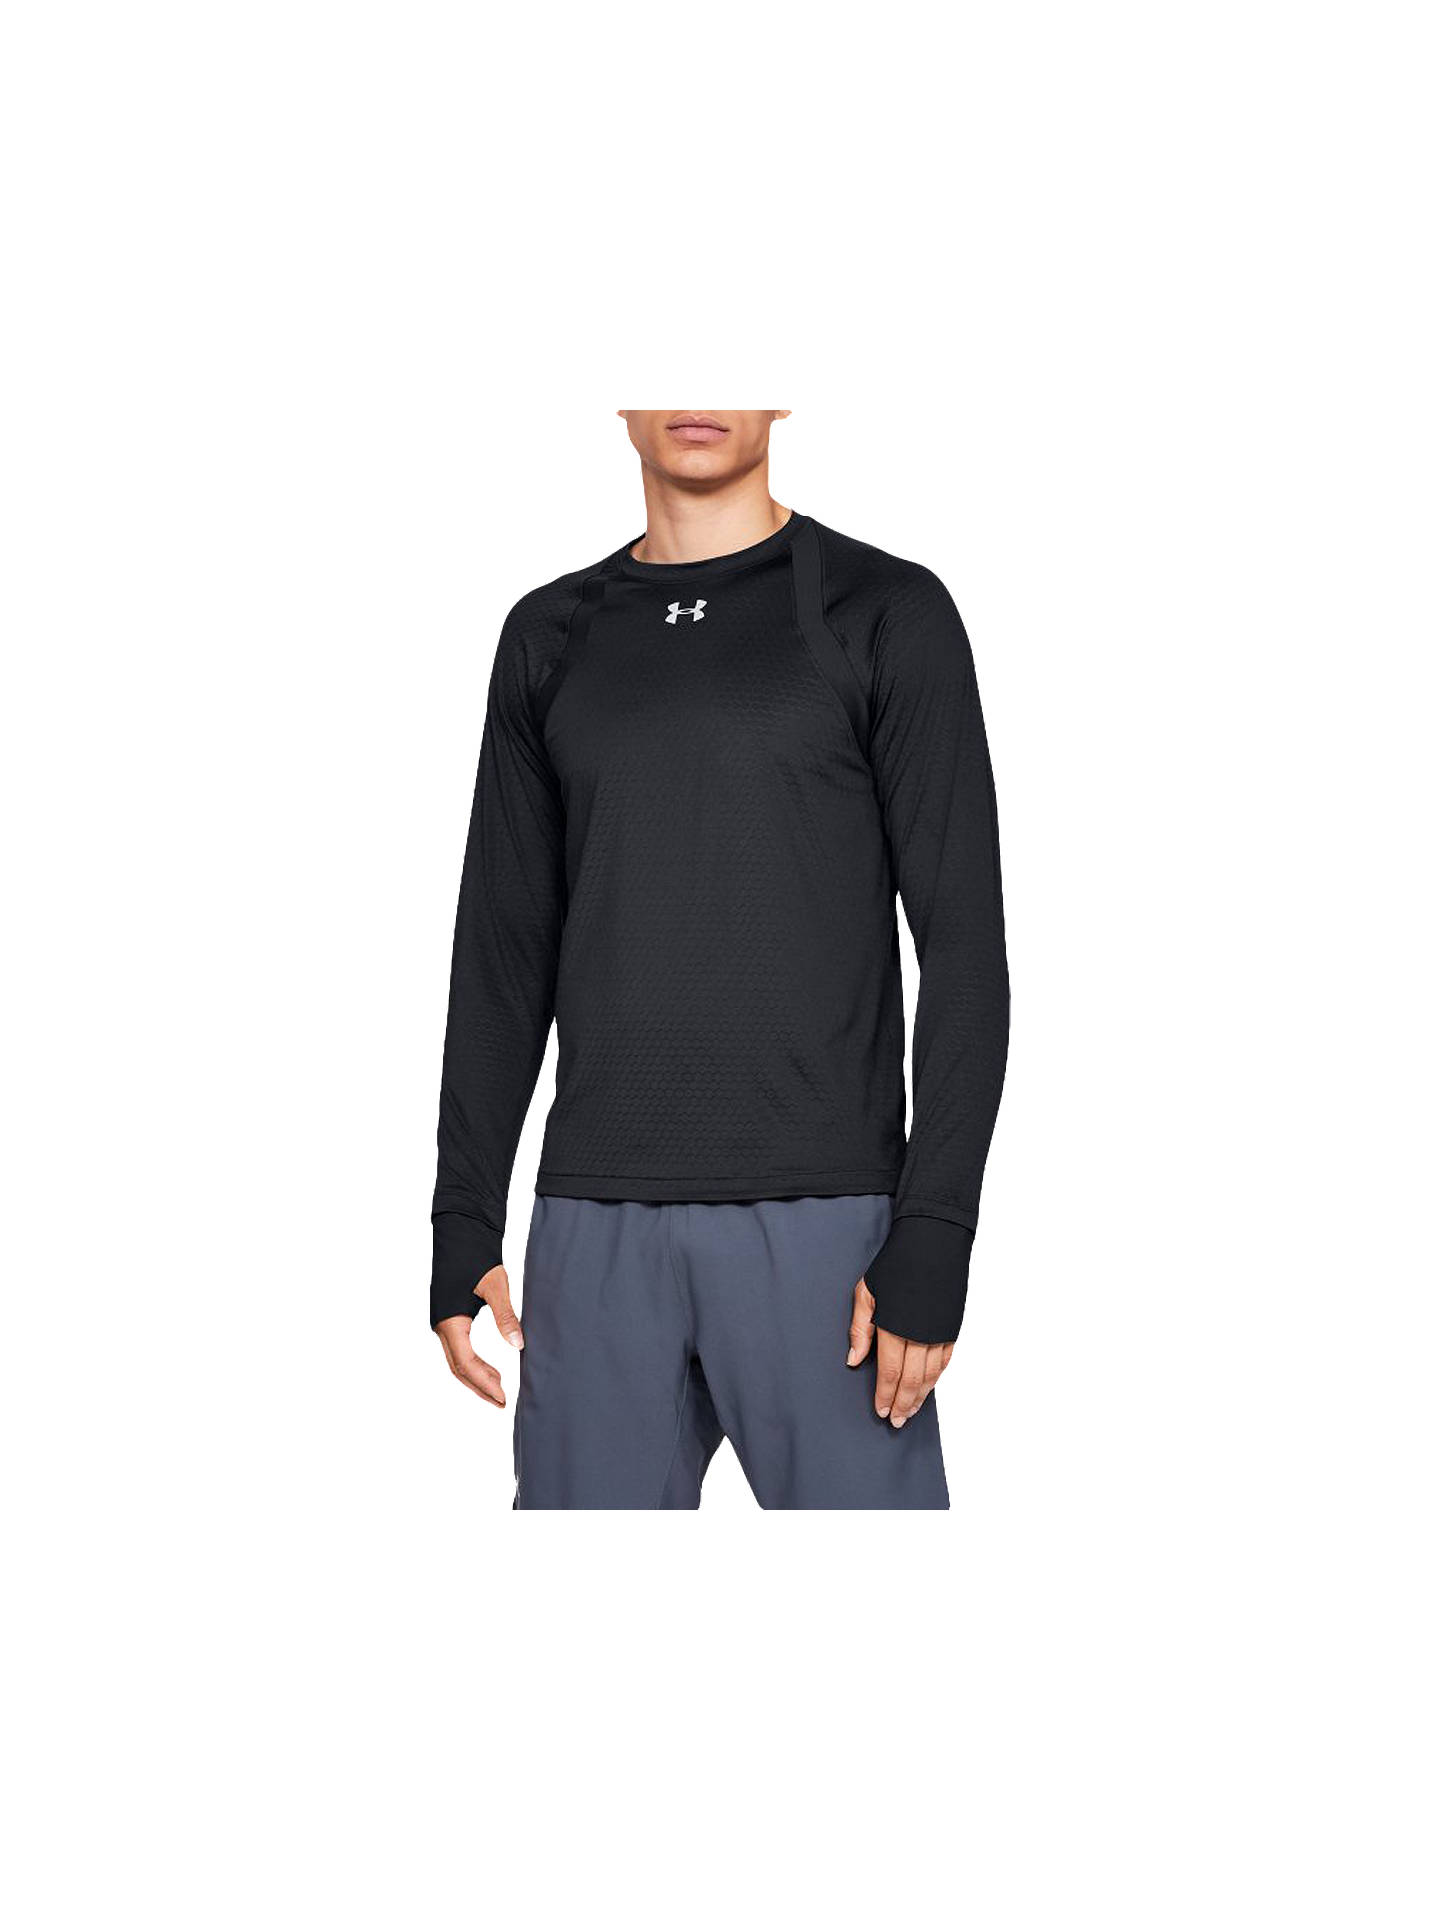 1615237d94 Under Armour Hexdelta Long Sleeve Running Top, Black/Reflective at ...